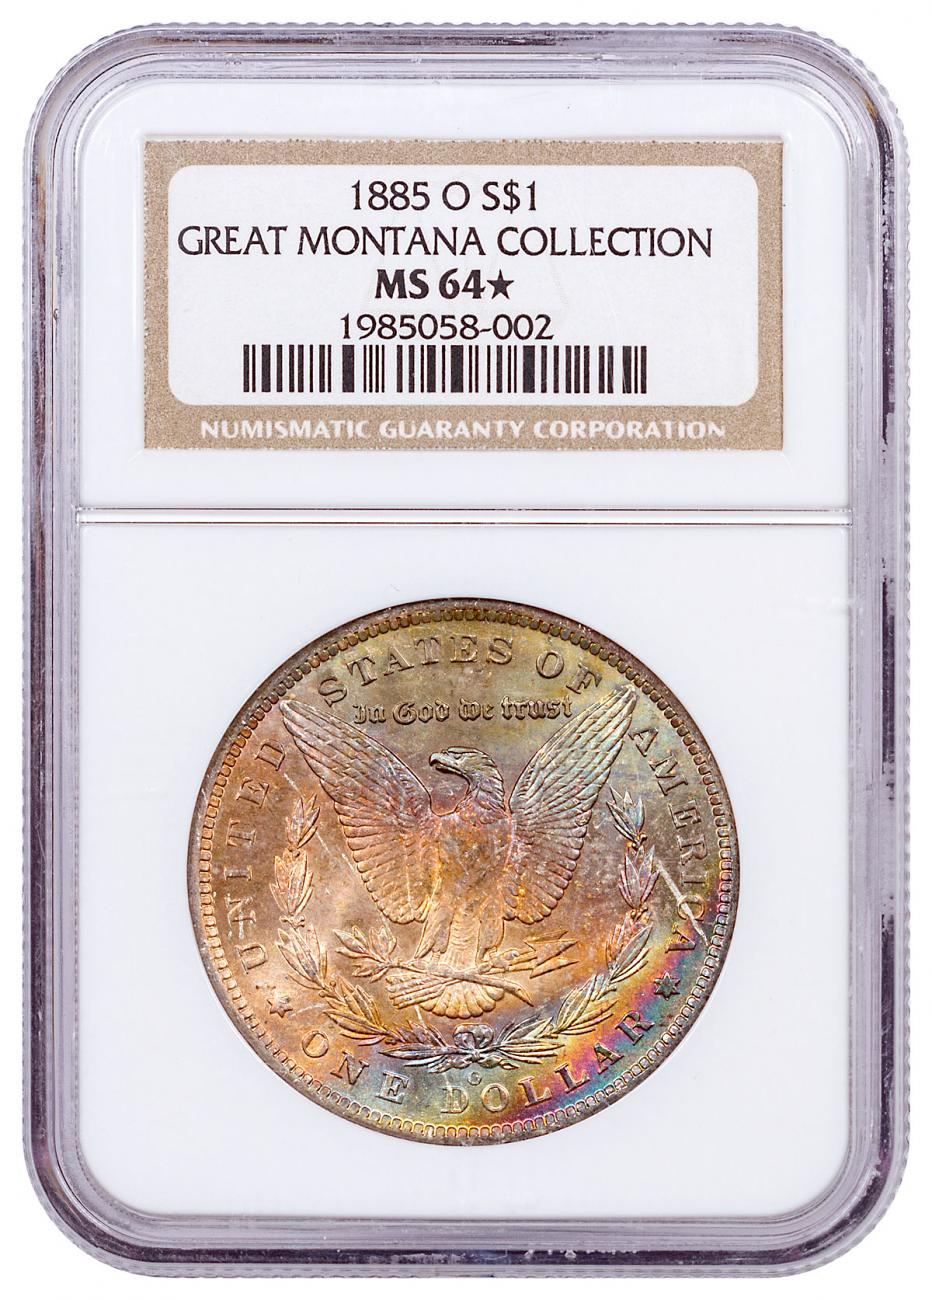 1885-O Morgan Silver Dollar From the Great Montana Collection NGC MS64* Rainbow Toned CPCR 8002